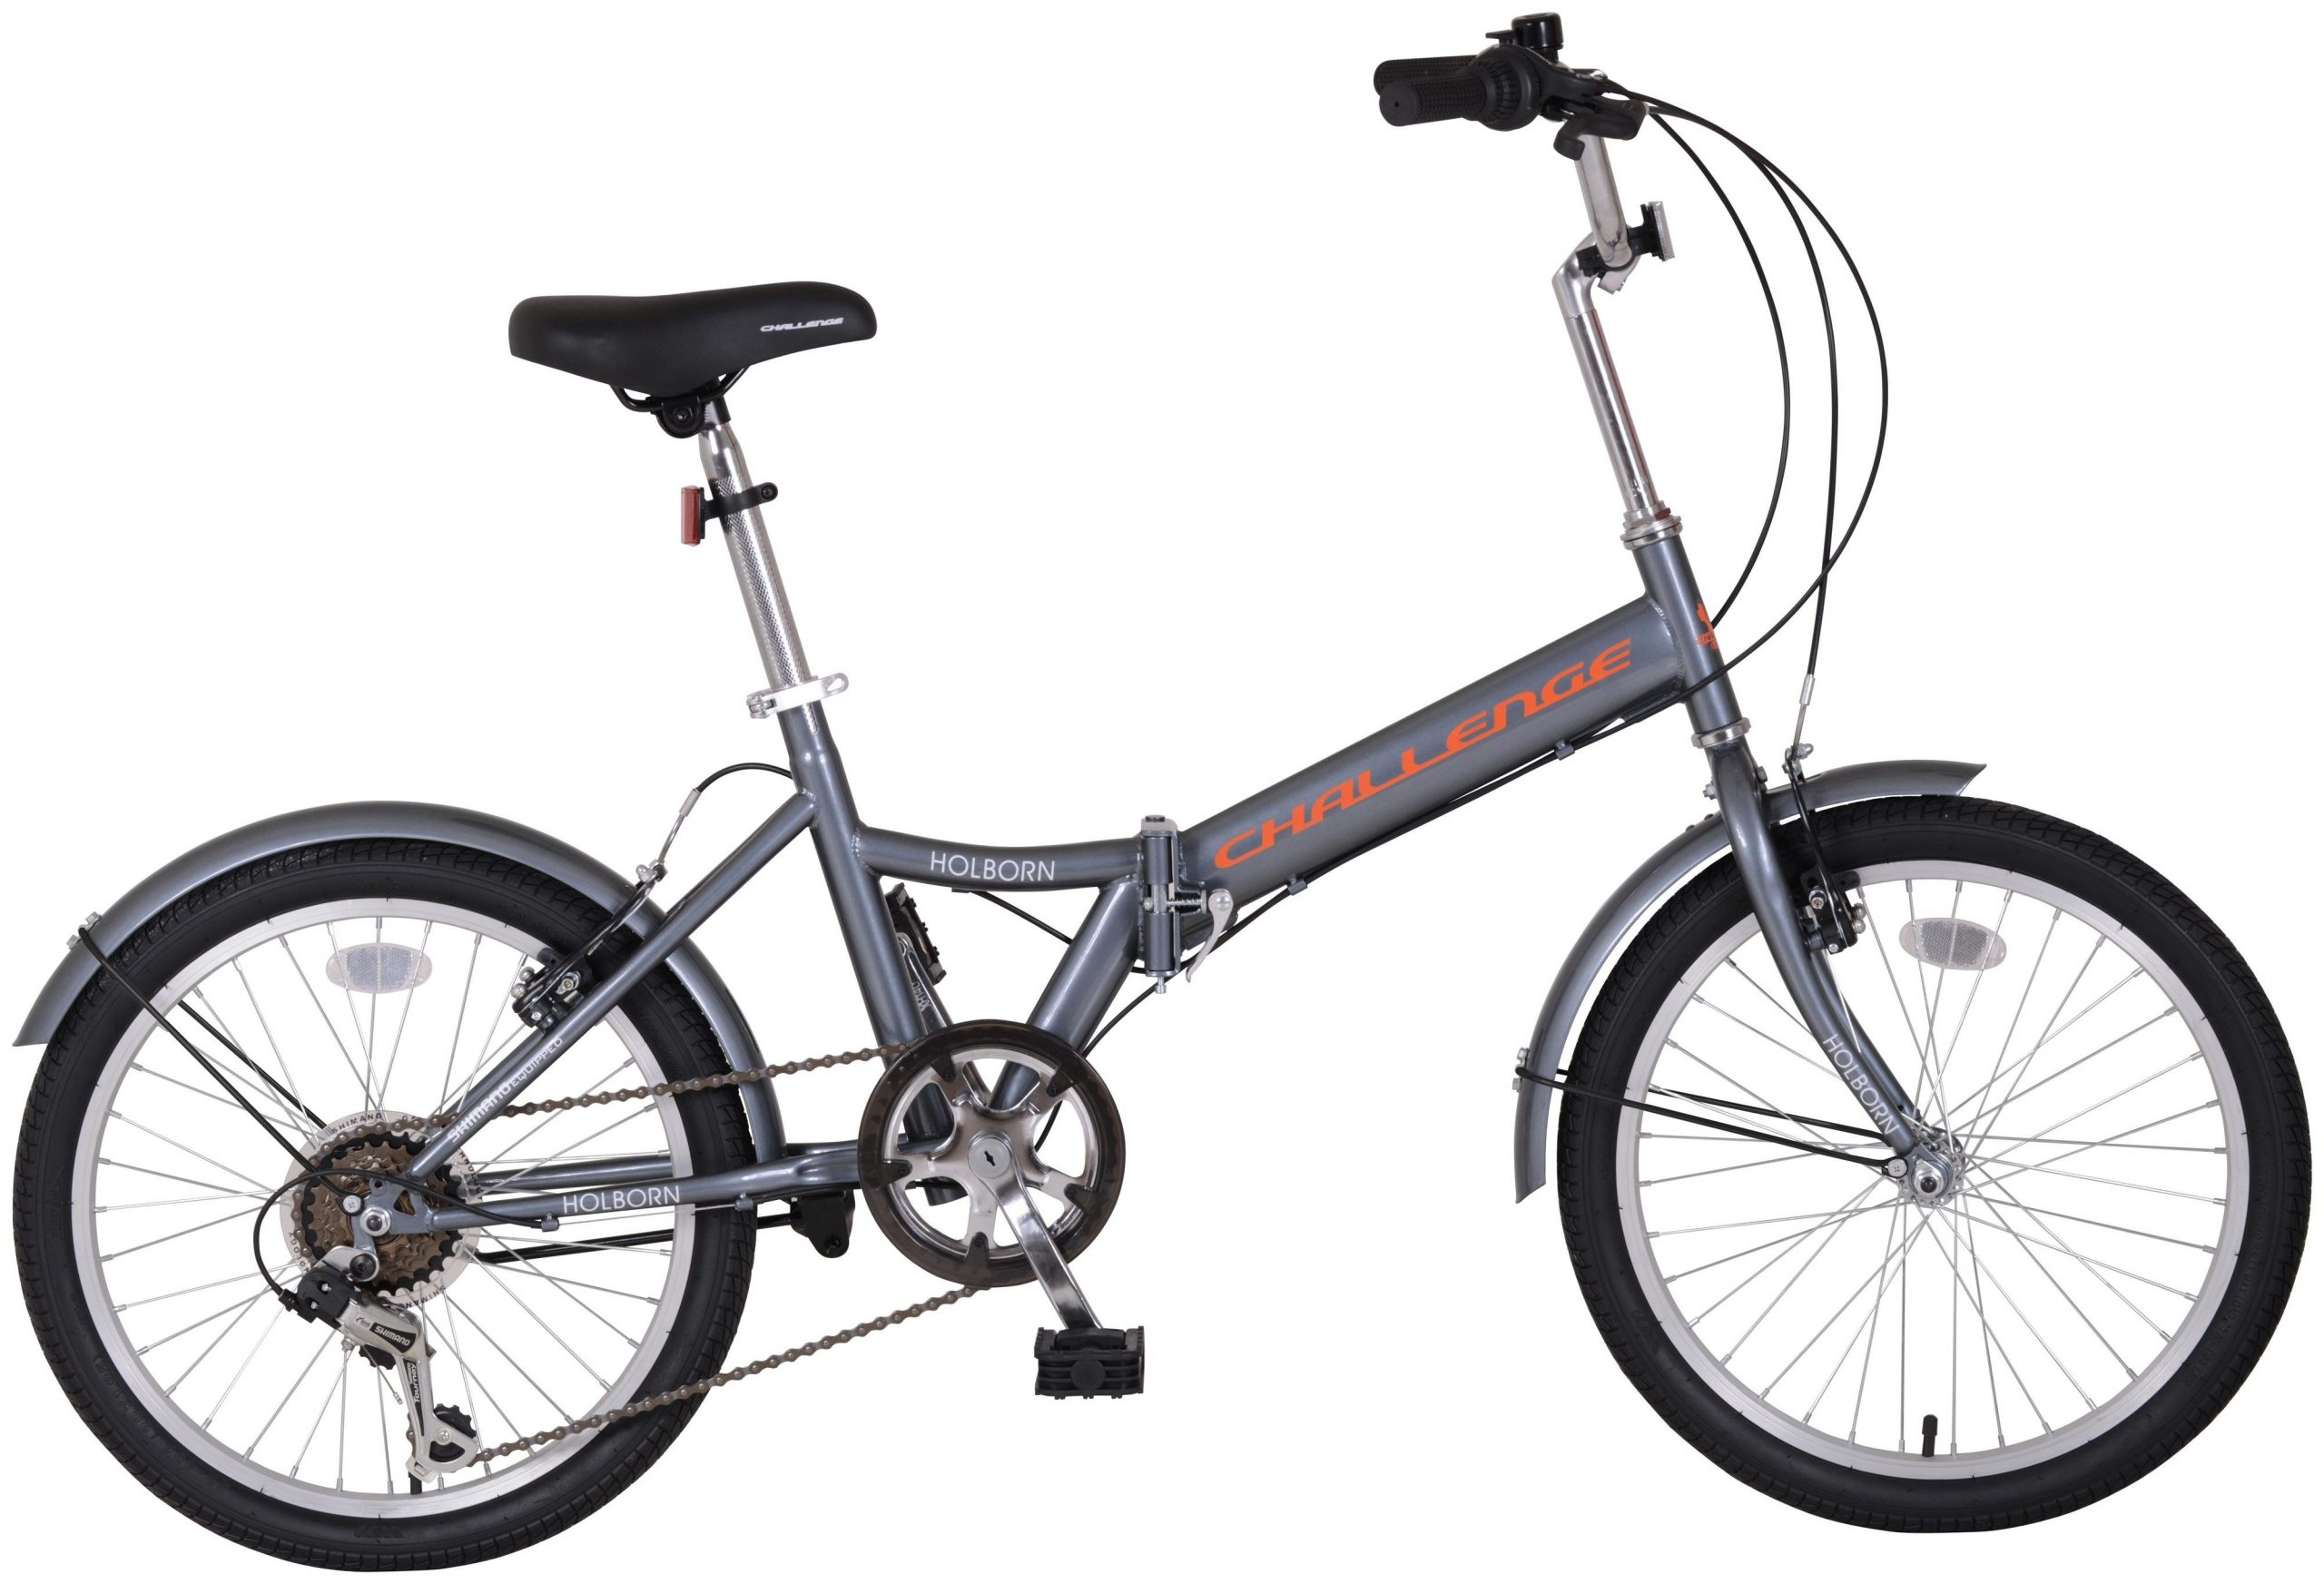 Challenge Holborn 20 inch Wheel Size Mens Folding Bike £129.99 @ Argos